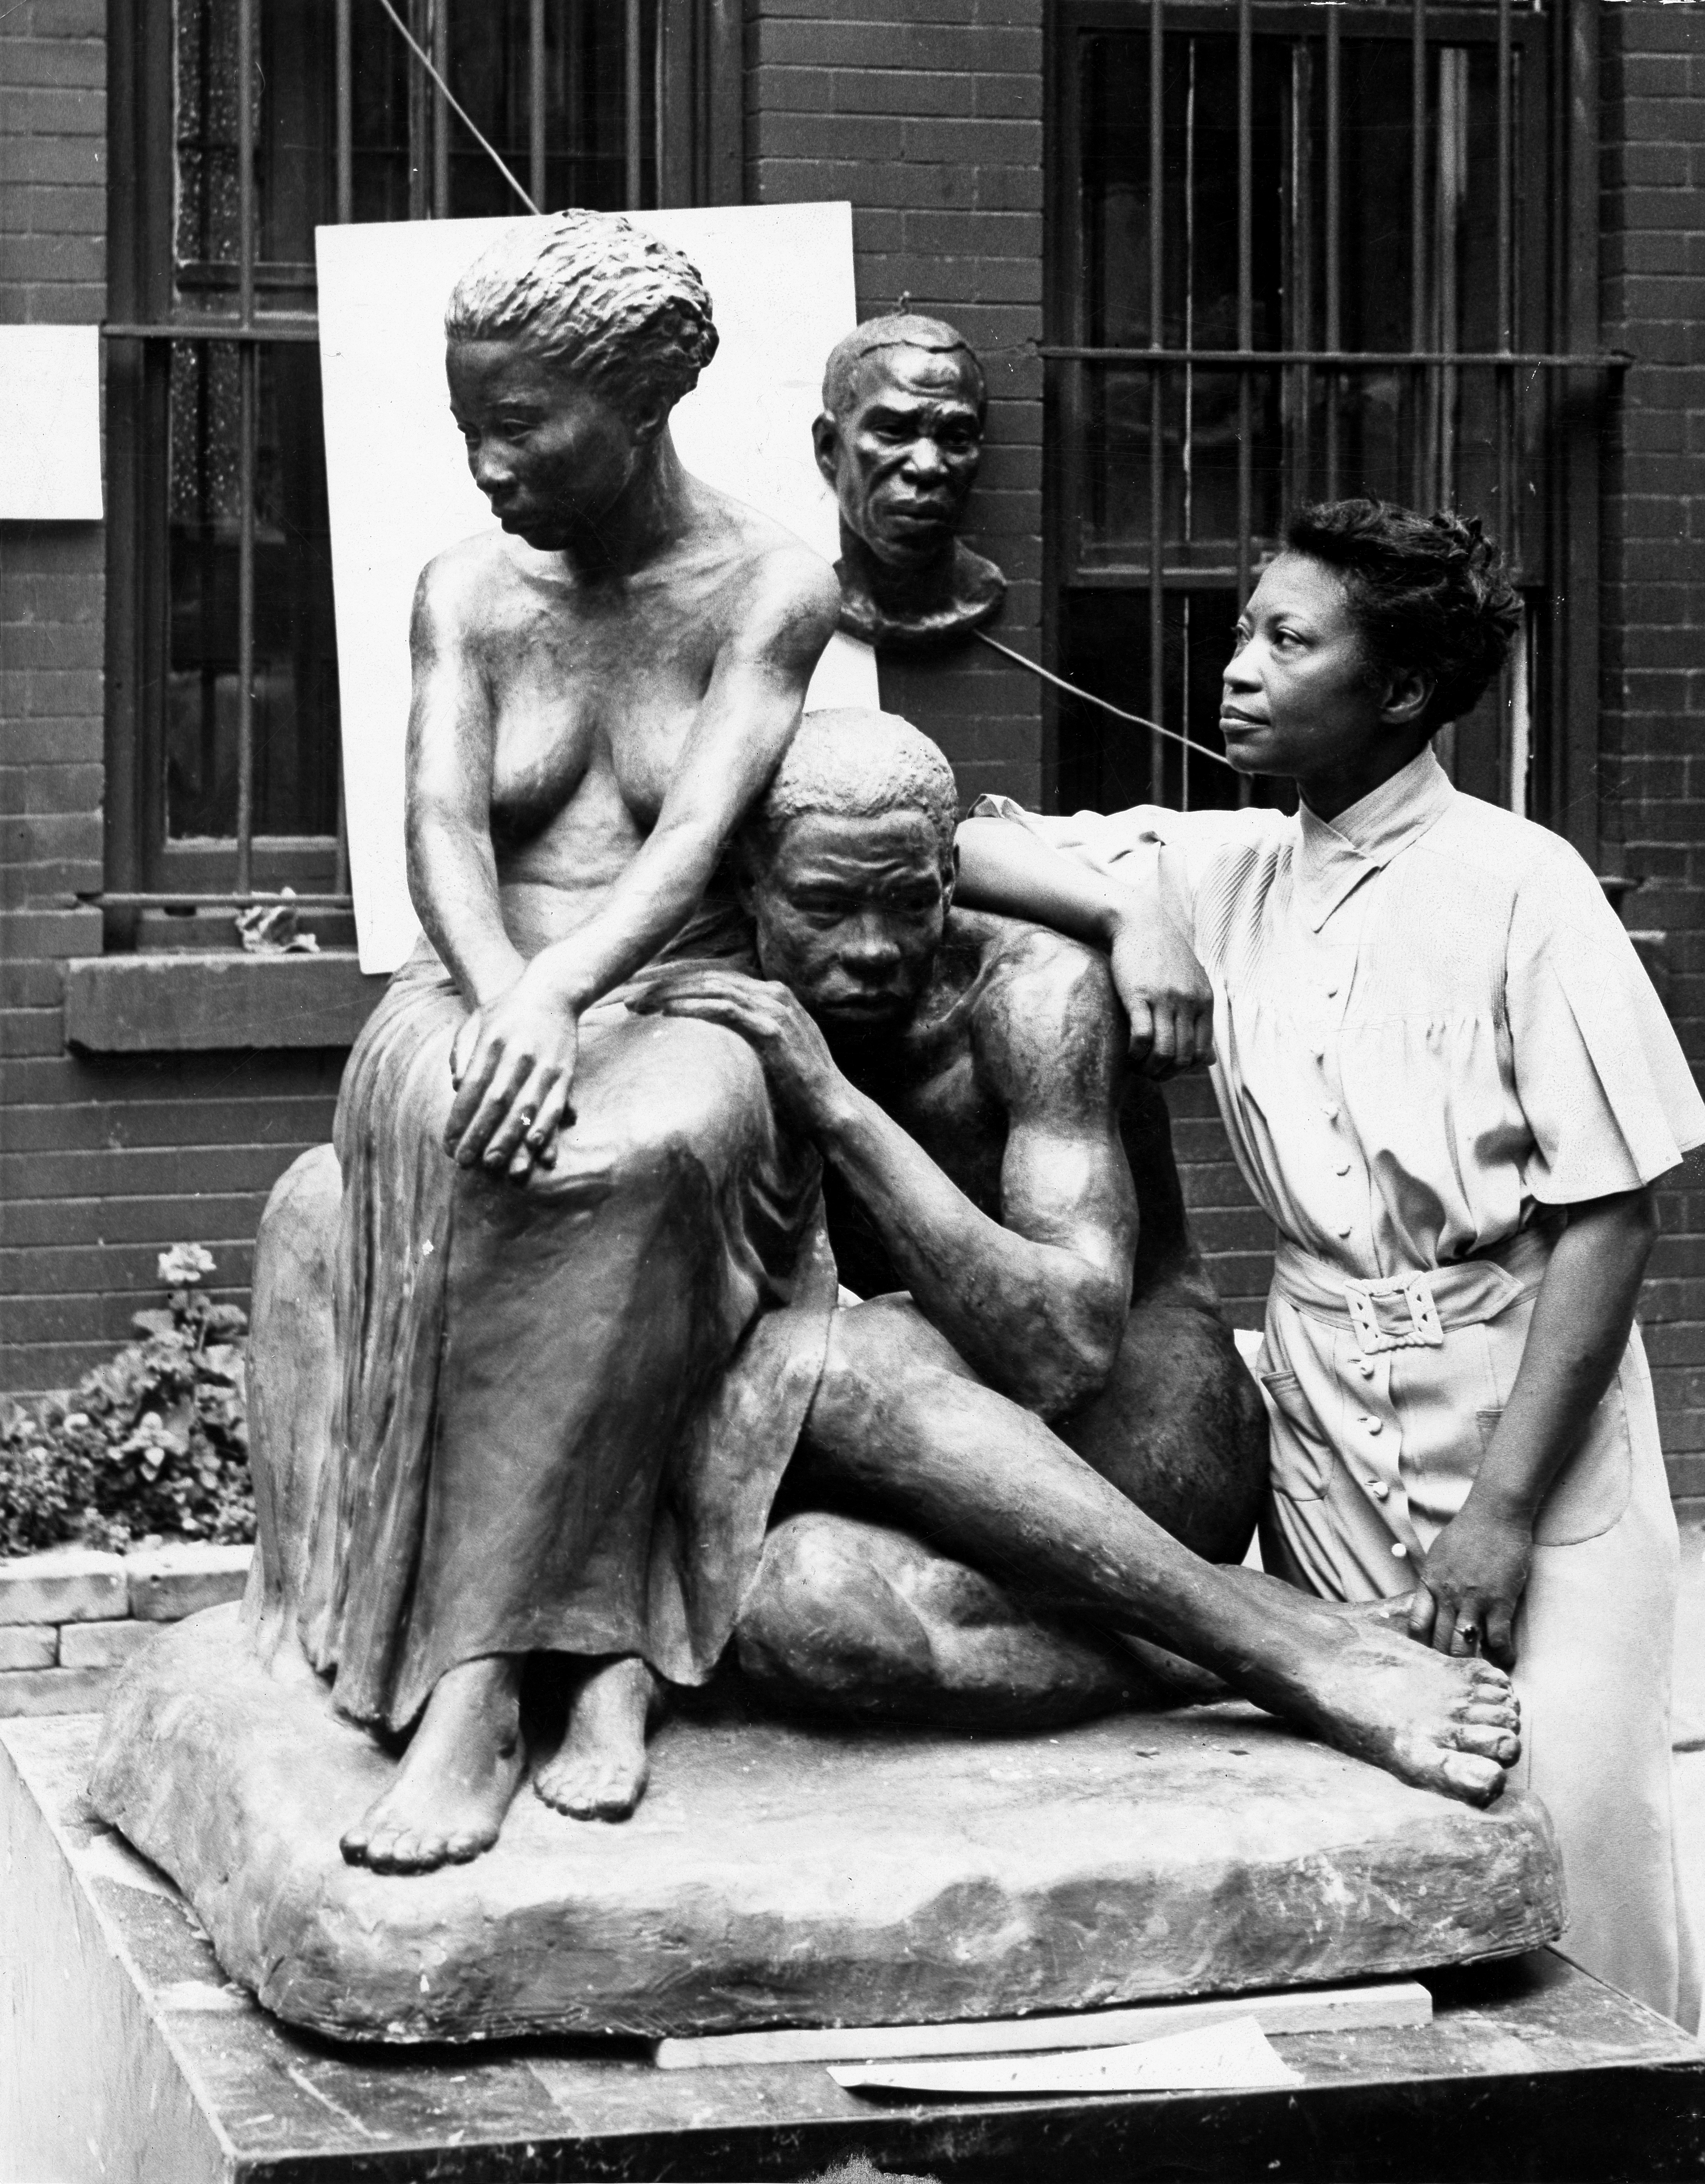 Augusta Savage with one of her sculptures, ca. 1938. From the collection of the [[Archives of American Art]]